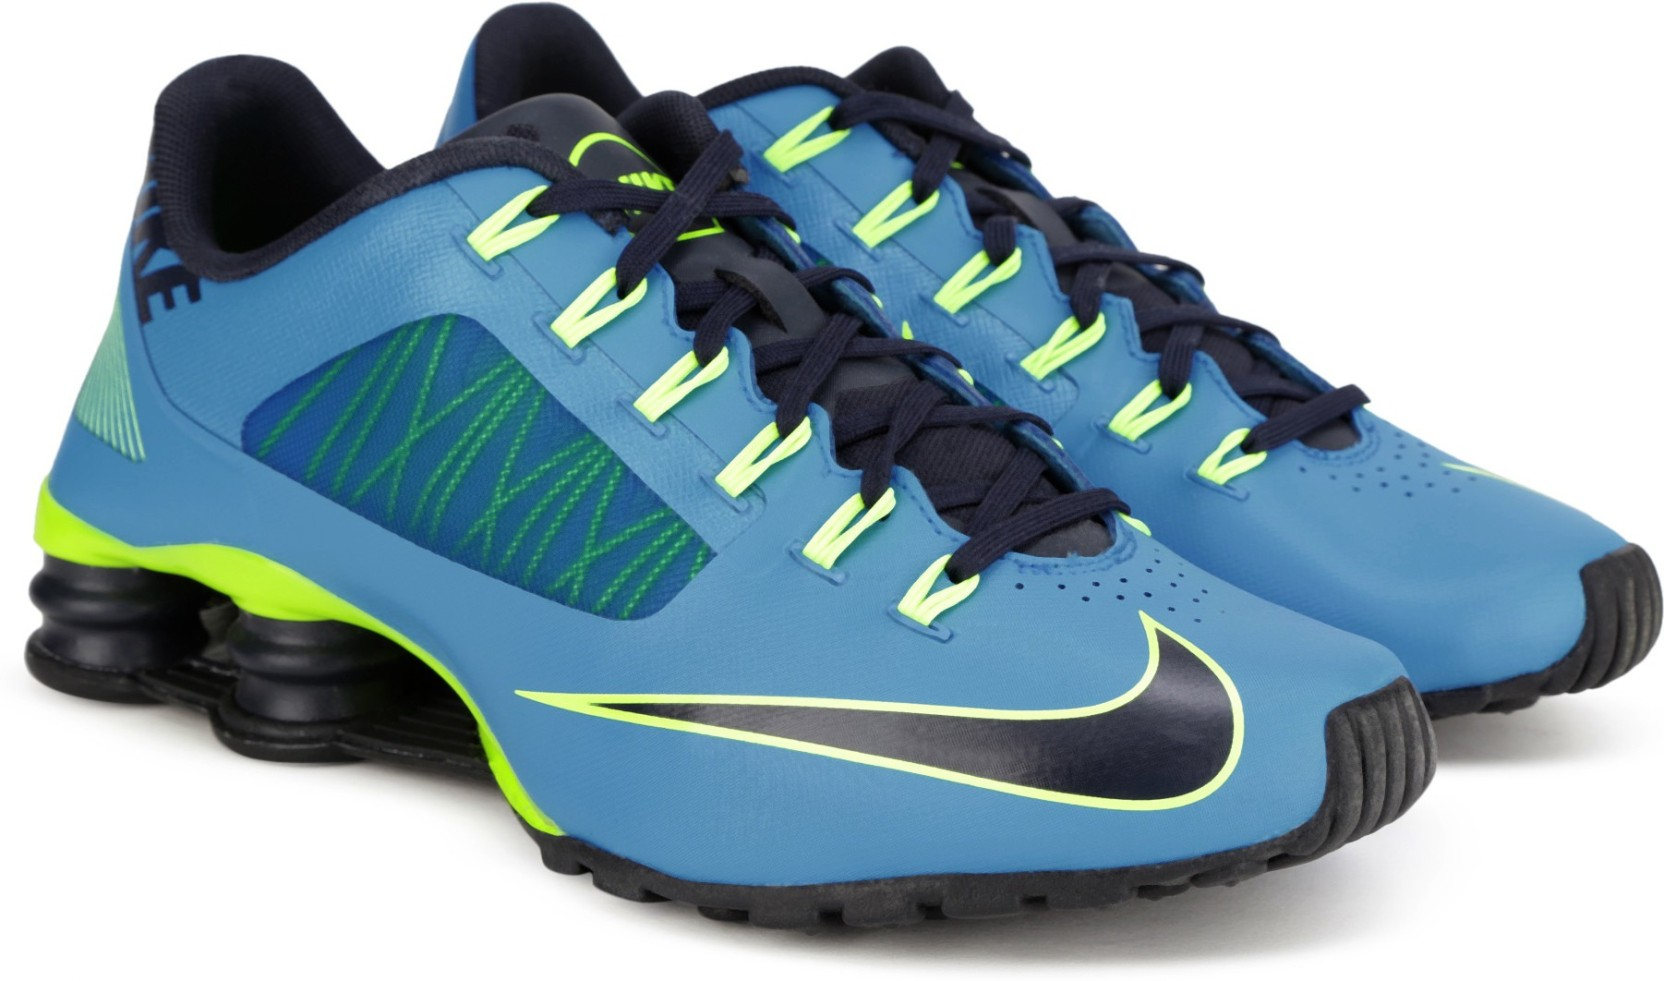 895ab7e02f9 ... ireland nike shox superfly r4 sneakers for men blue 4bcf7 2157c